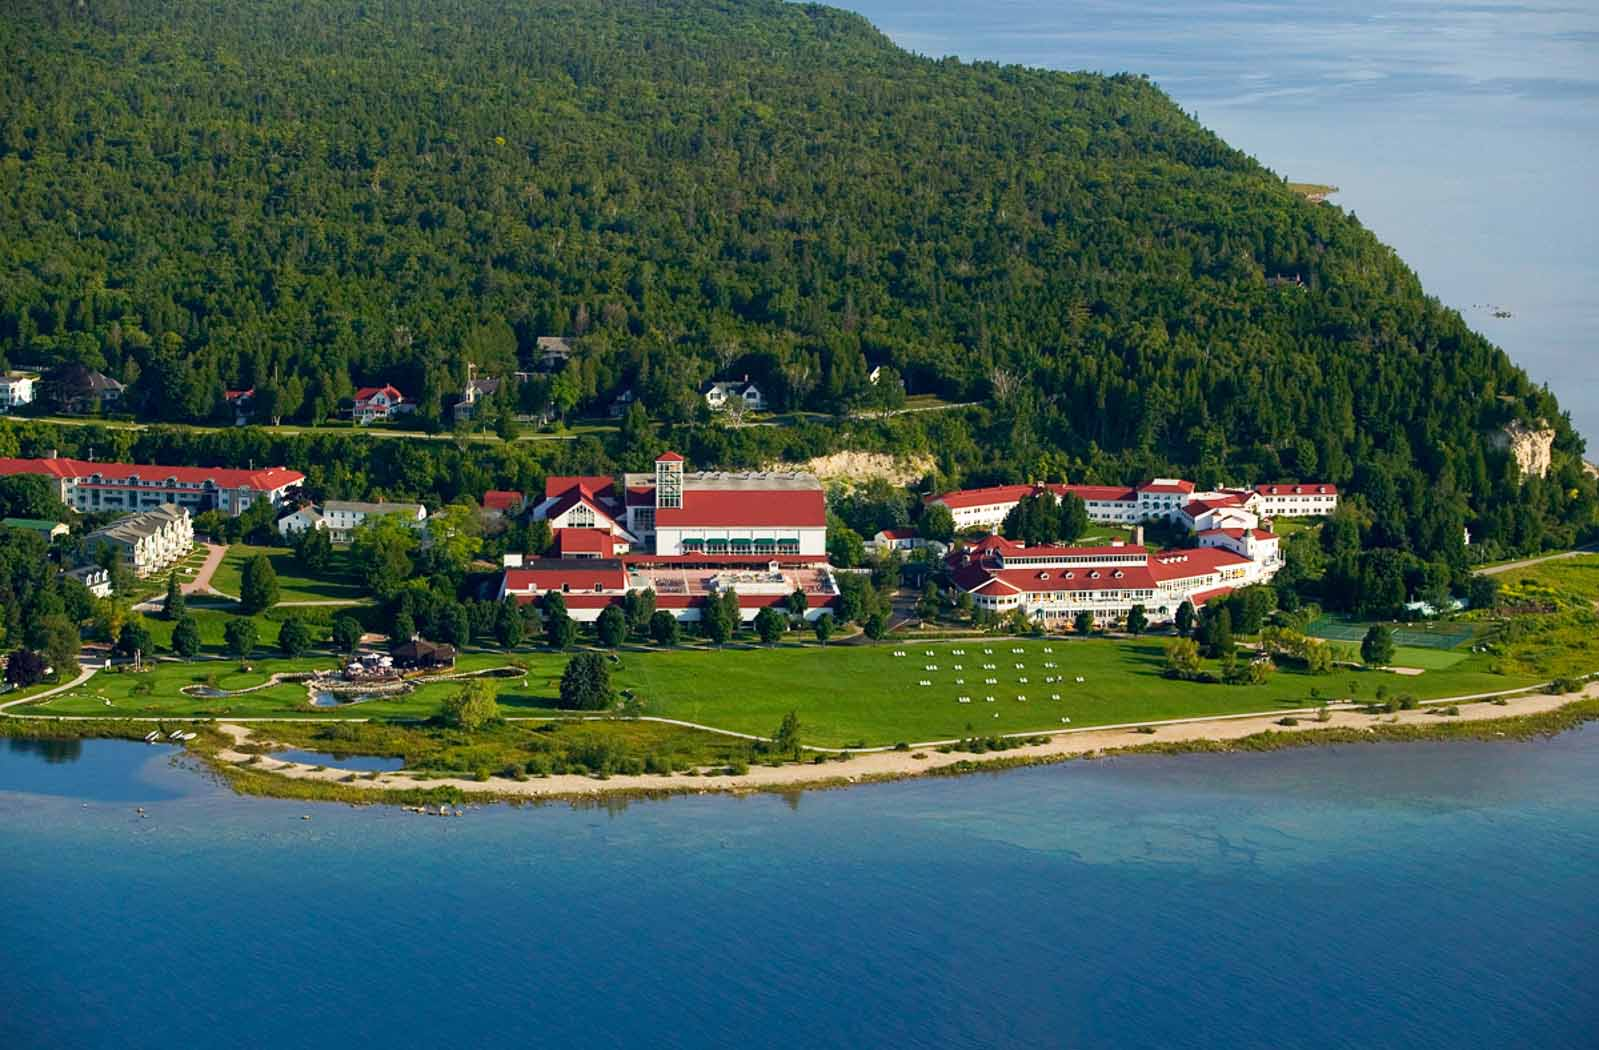 Mission Point Resort – Mackinac Island, MI